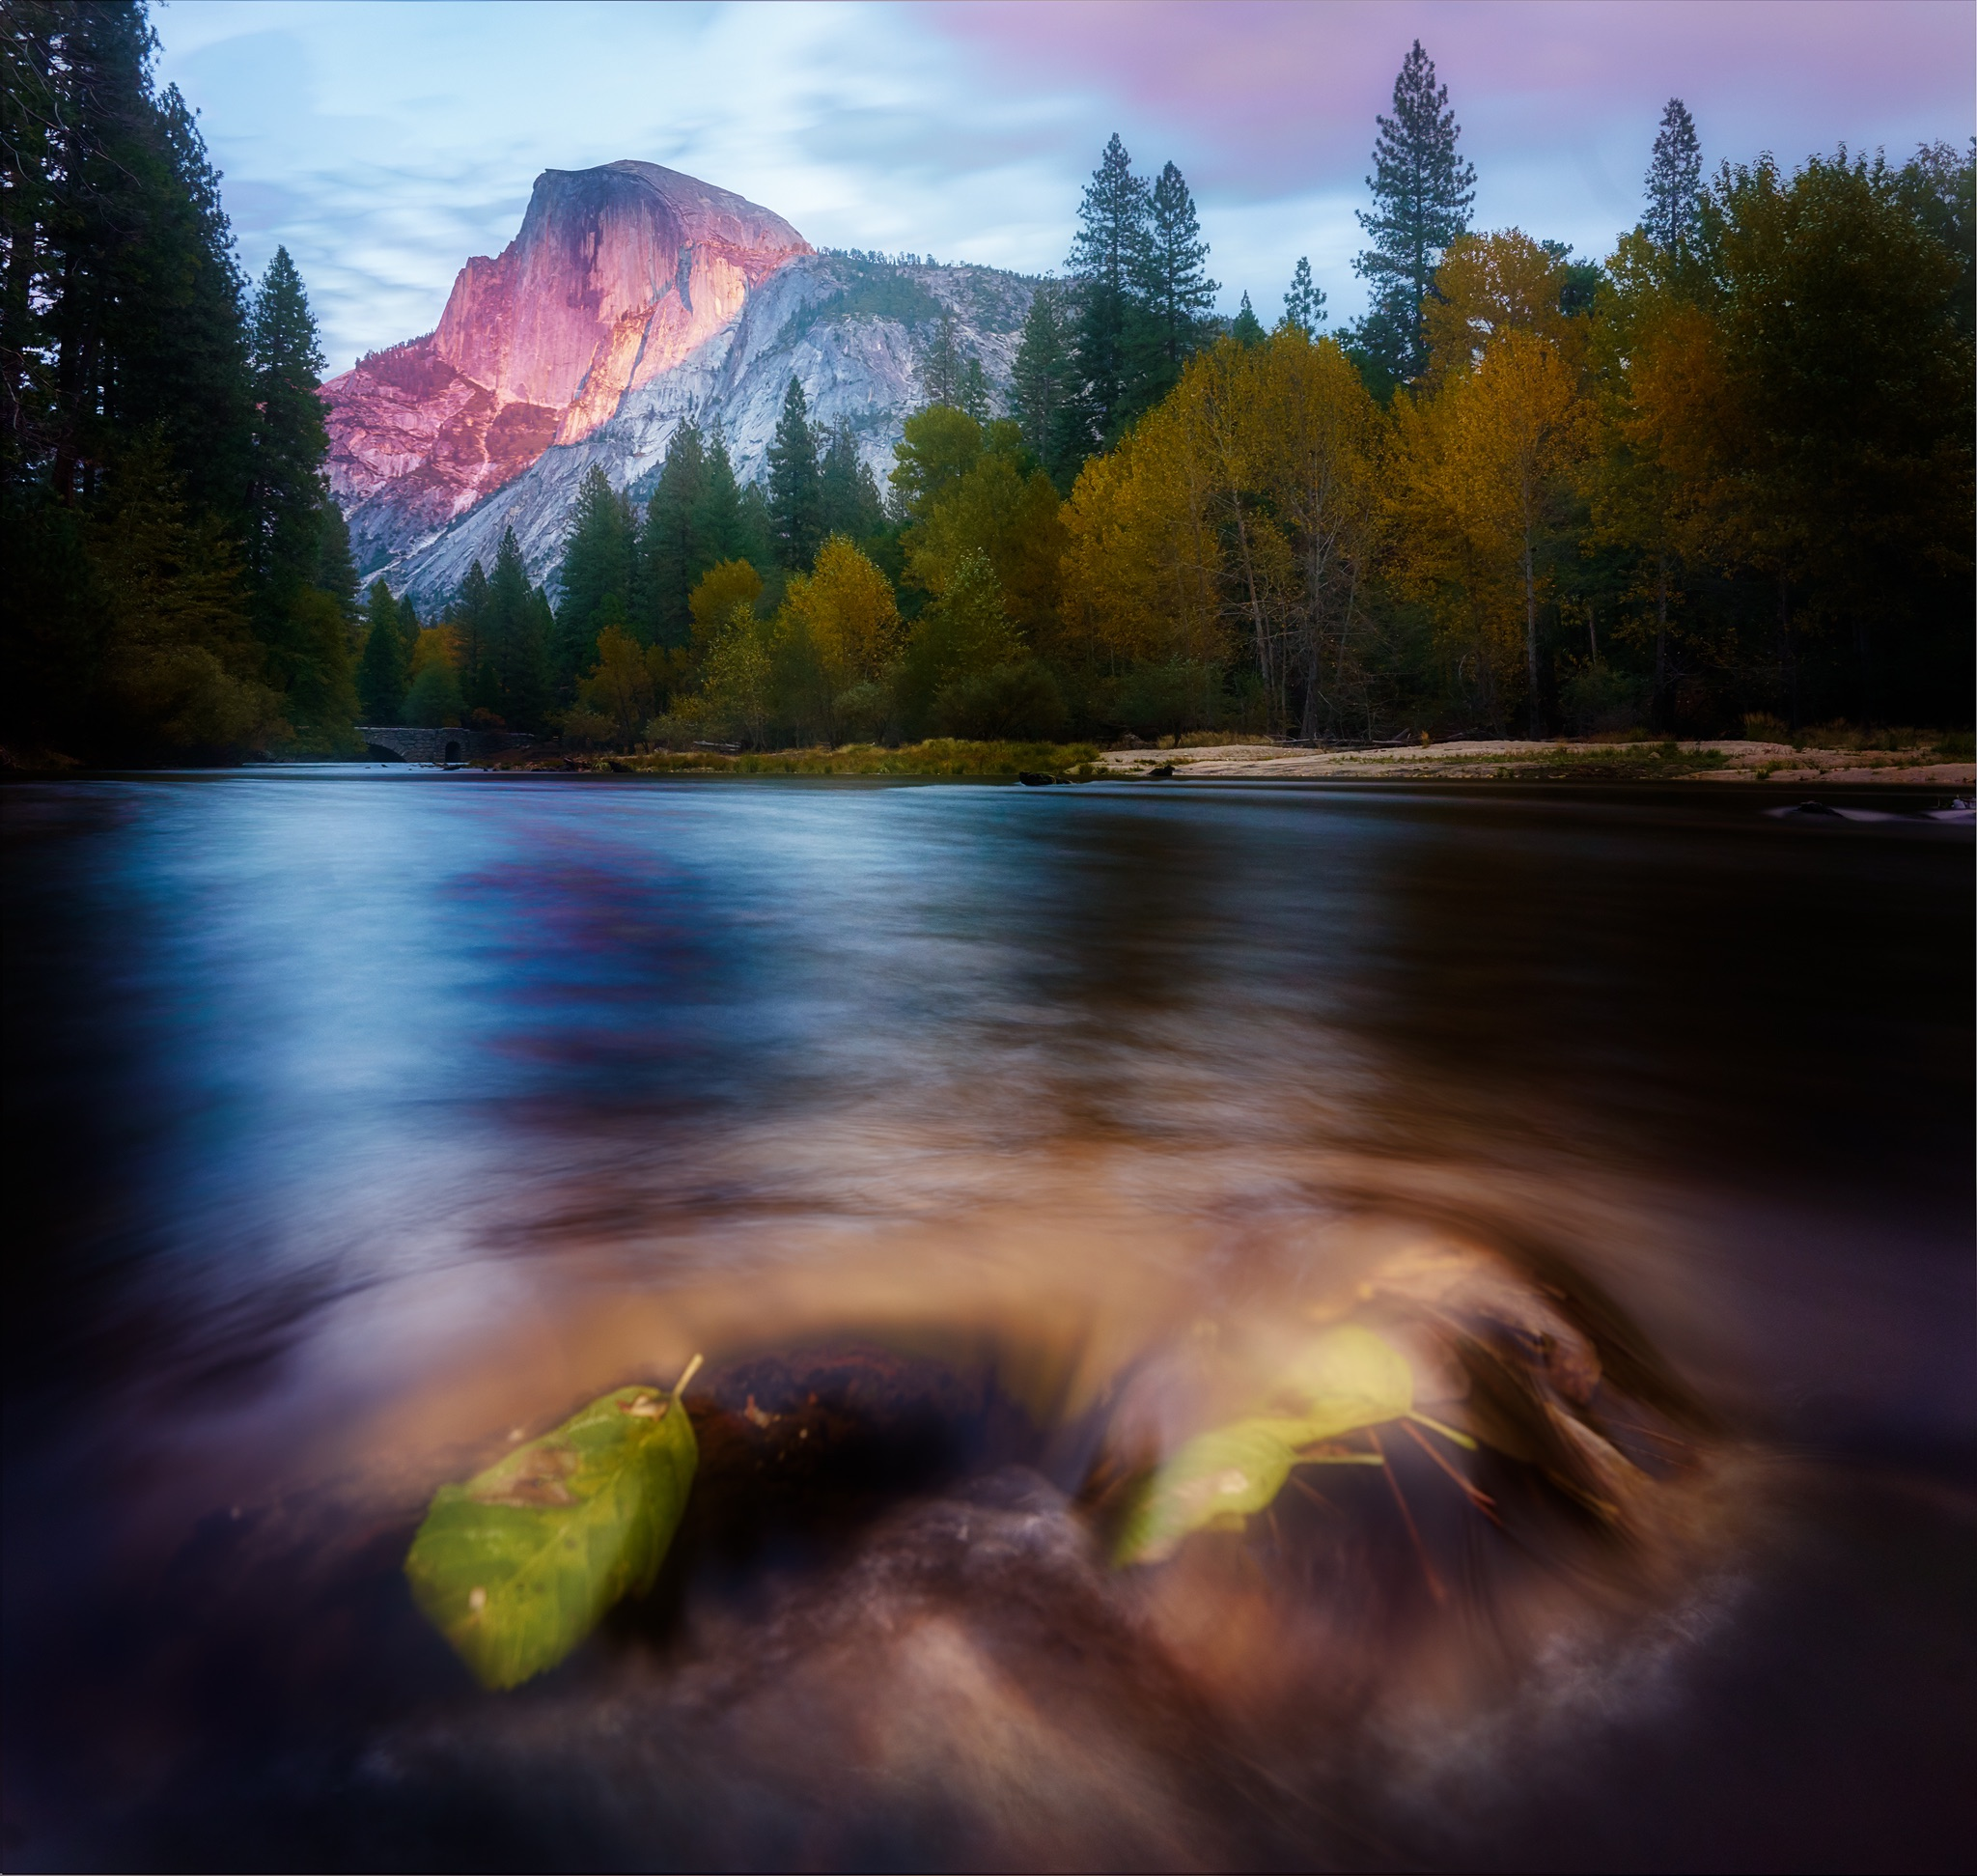 Sunset at Half Dome from The Merced in Yosemite National Park